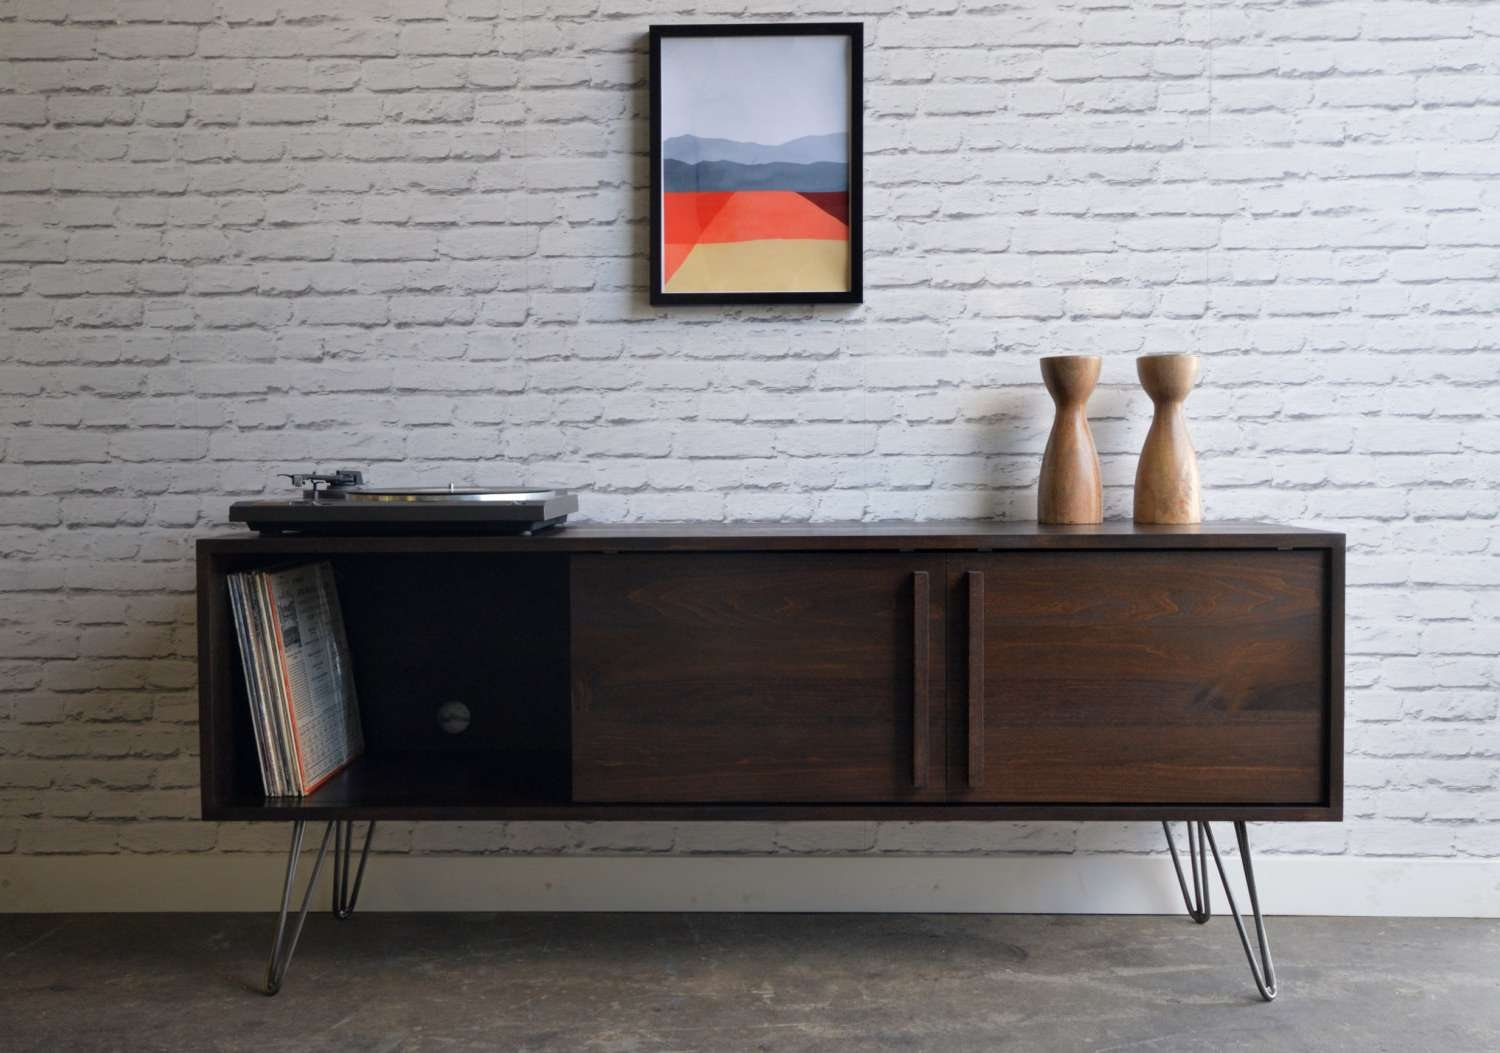 Kasse Tv Stand With Hairpin Legs Regarding Hairpin Leg Tv Stands (Gallery 2 of 15)